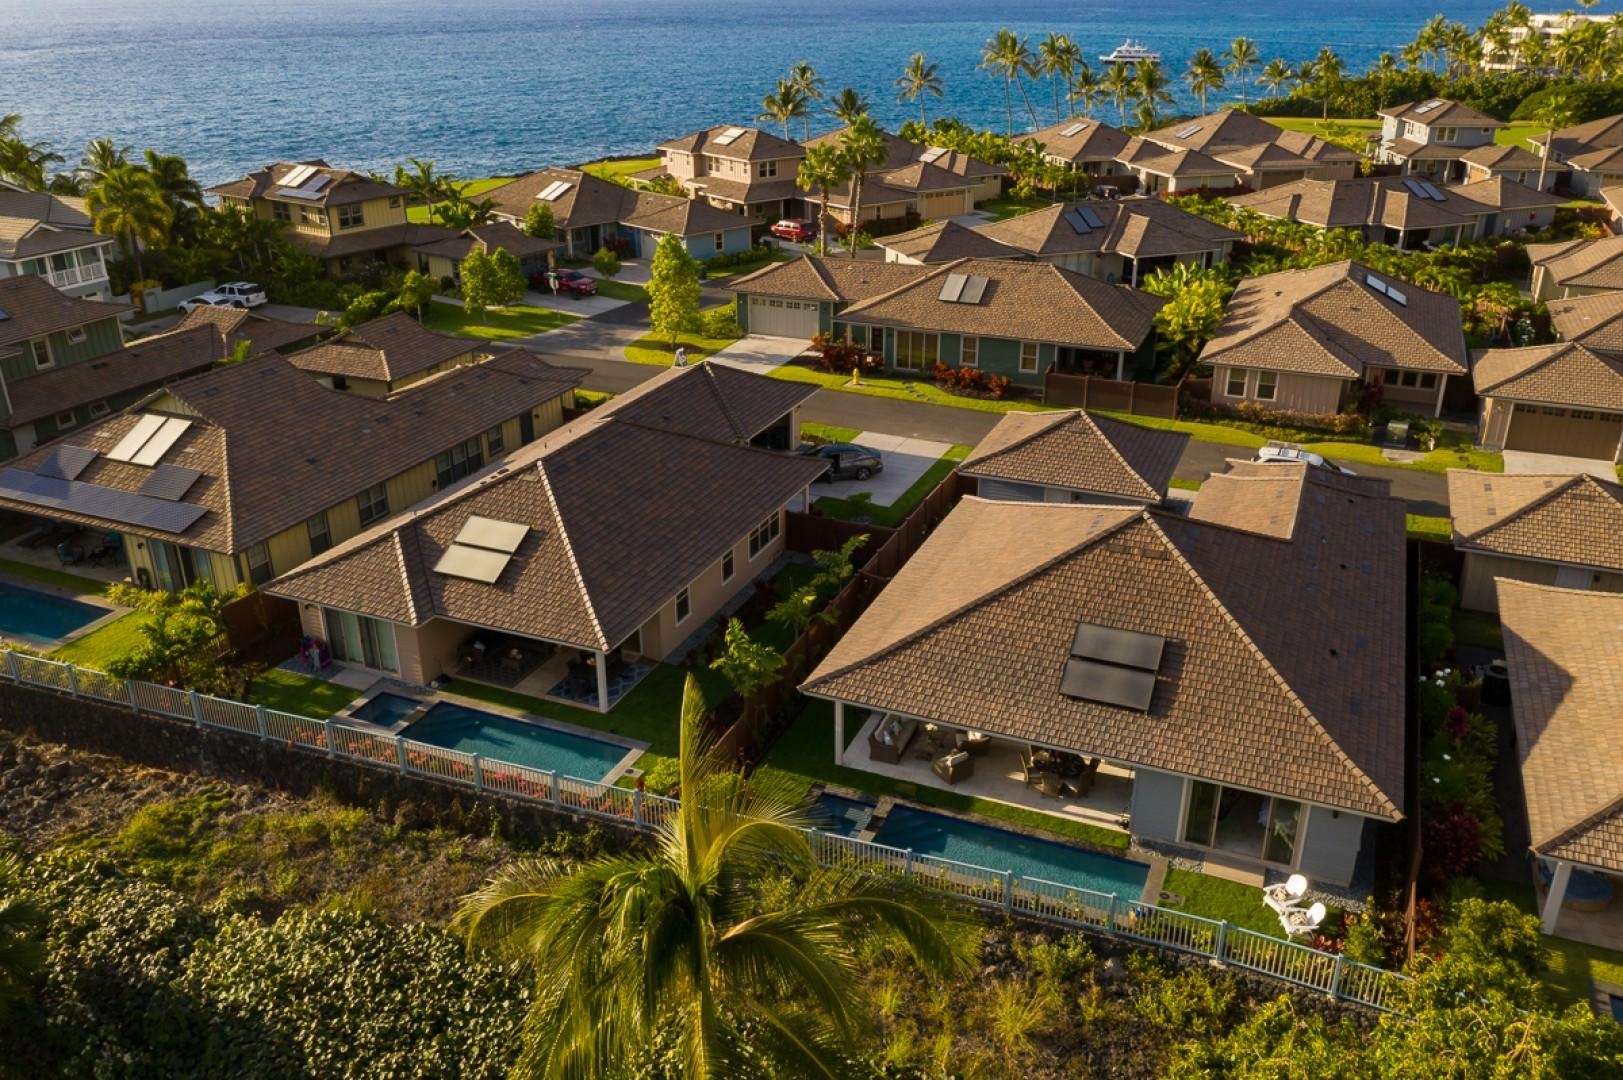 The home is only a 10-minute walk from Keauhou Bay